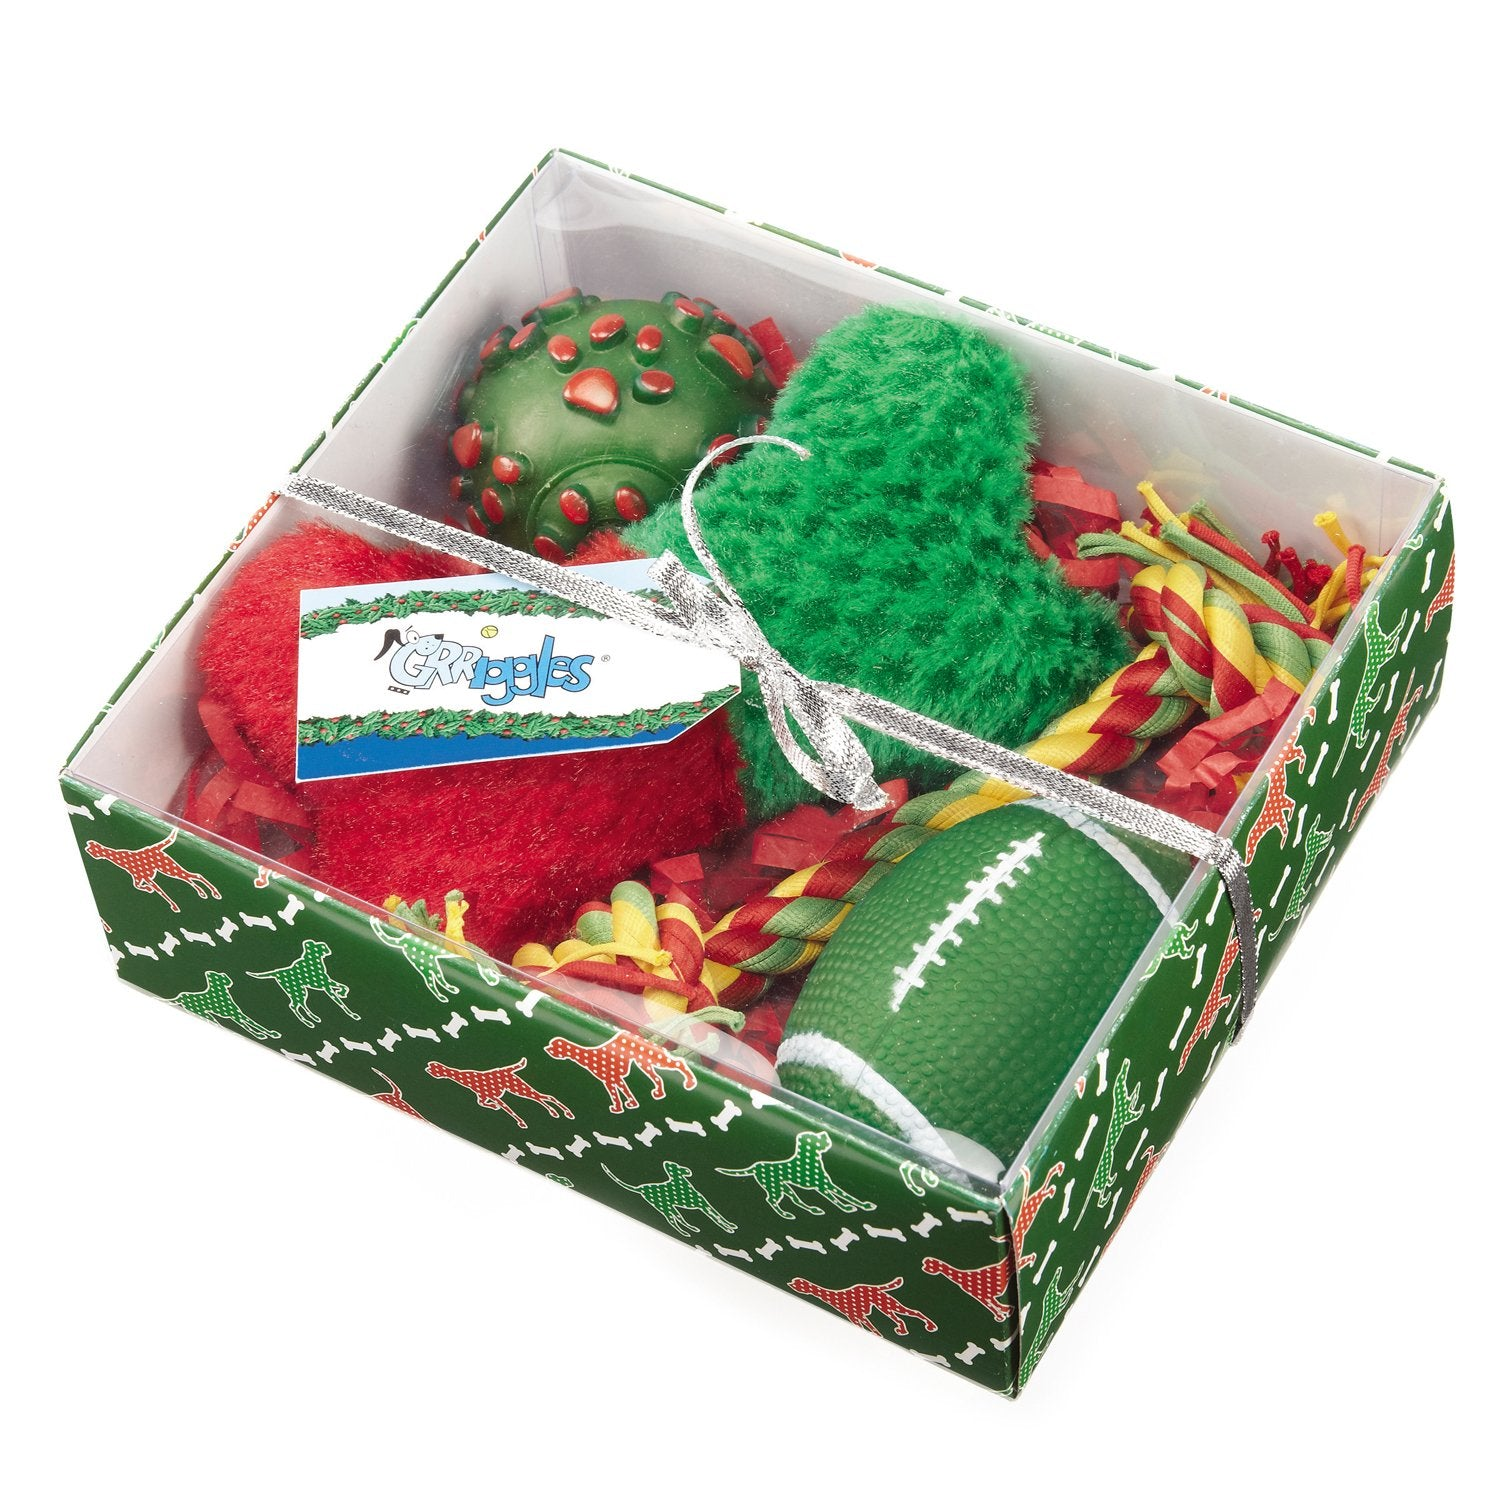 Grriggles Holiday Hound Dog Toys 4-Piece Gift Sets, Green